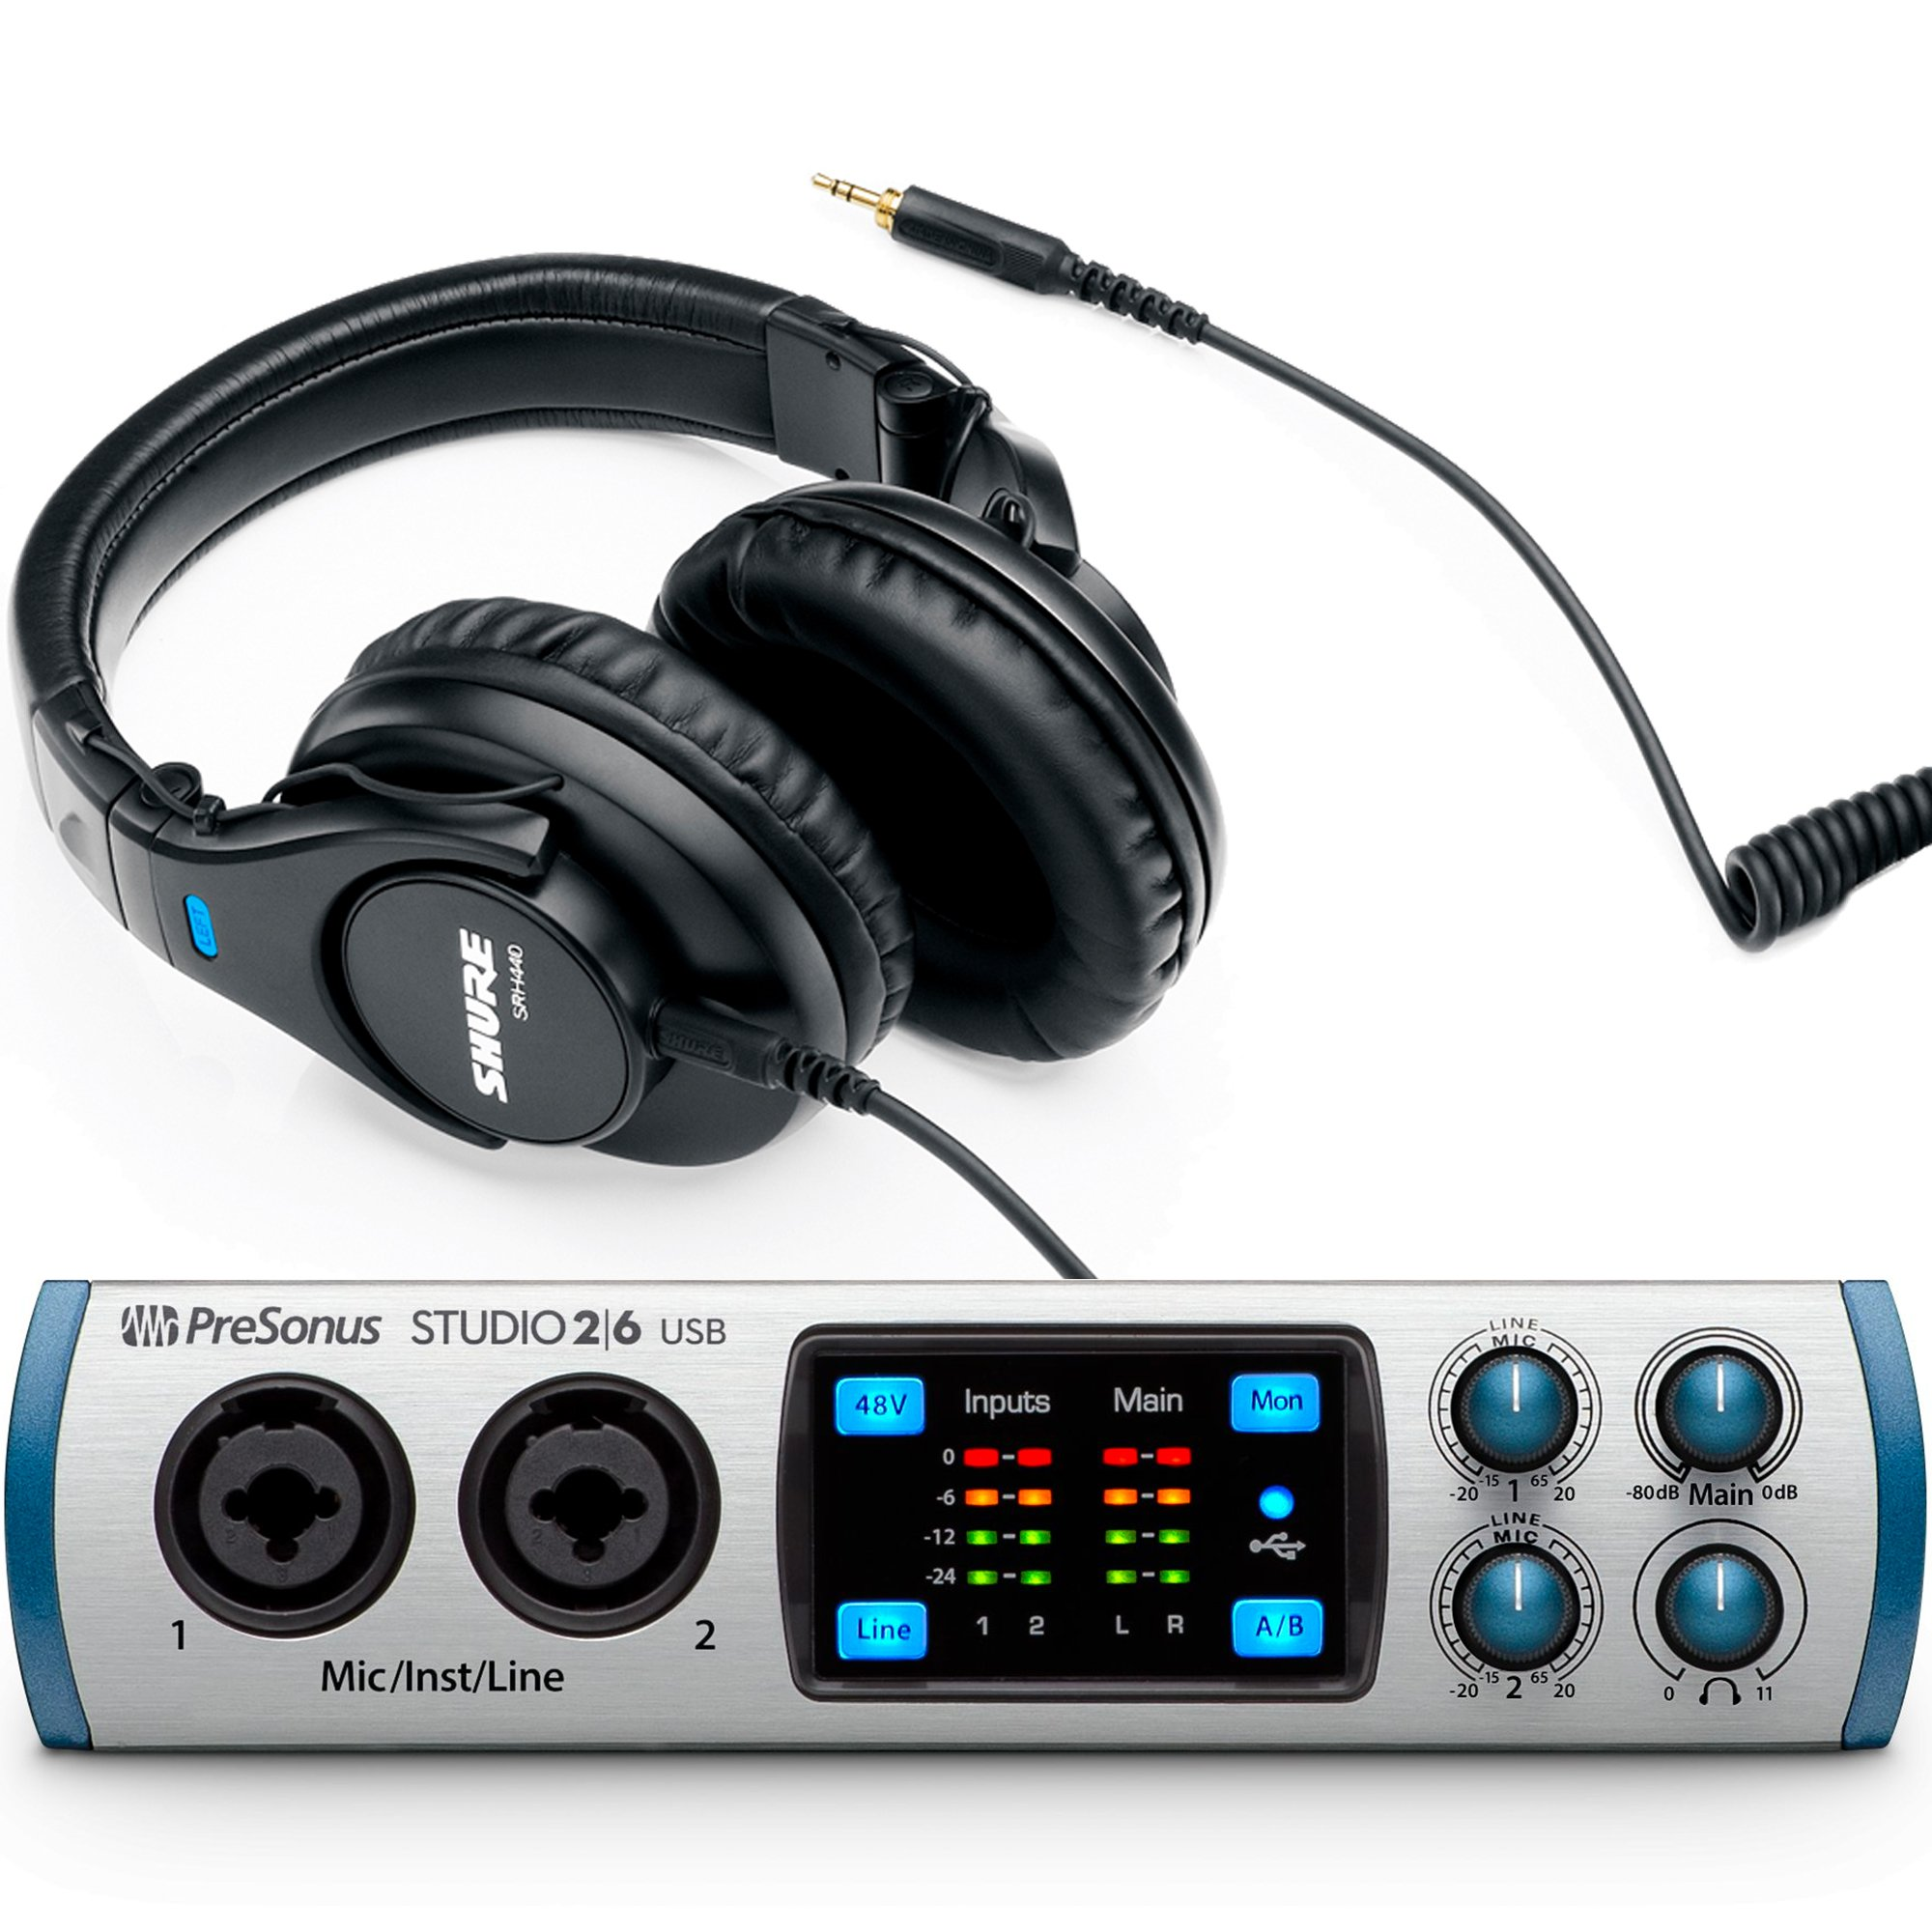 Presonus Studio 26 USB Audio MIDI Interface with Shure SRH440 Monitoring Headphones